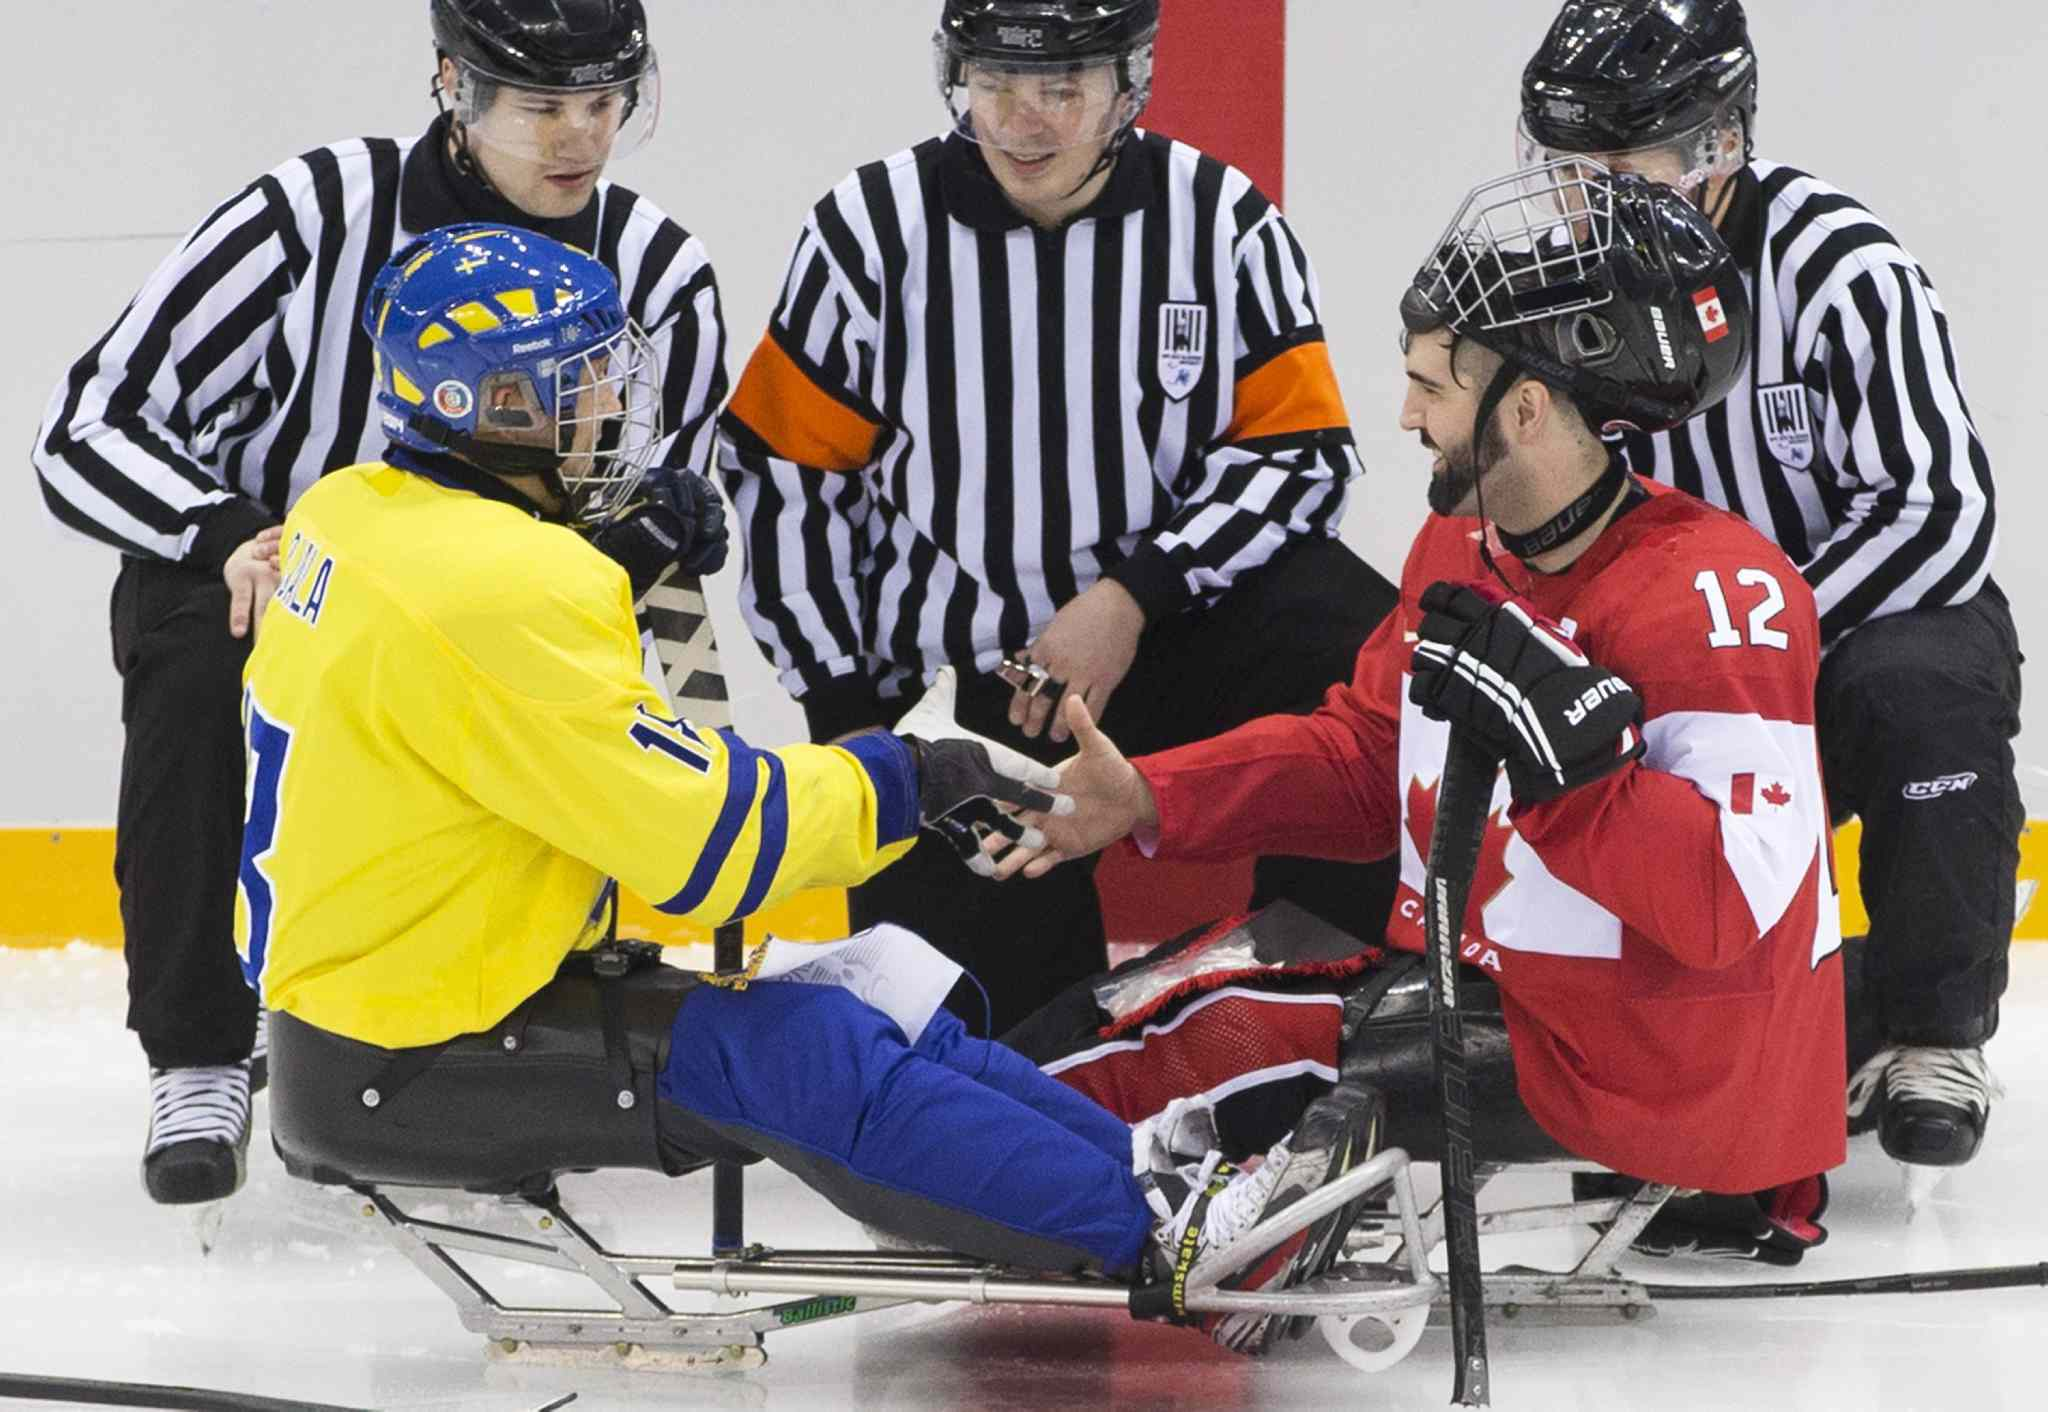 Greg Westlake of Canada, right, and Peter Ojala of Sweden, left, shake hands before the ice sledge hockey match at the Shayba Arena at the 2014 Winter Paralympics in Sochi, Russia, Saturday, March 8, 2014.